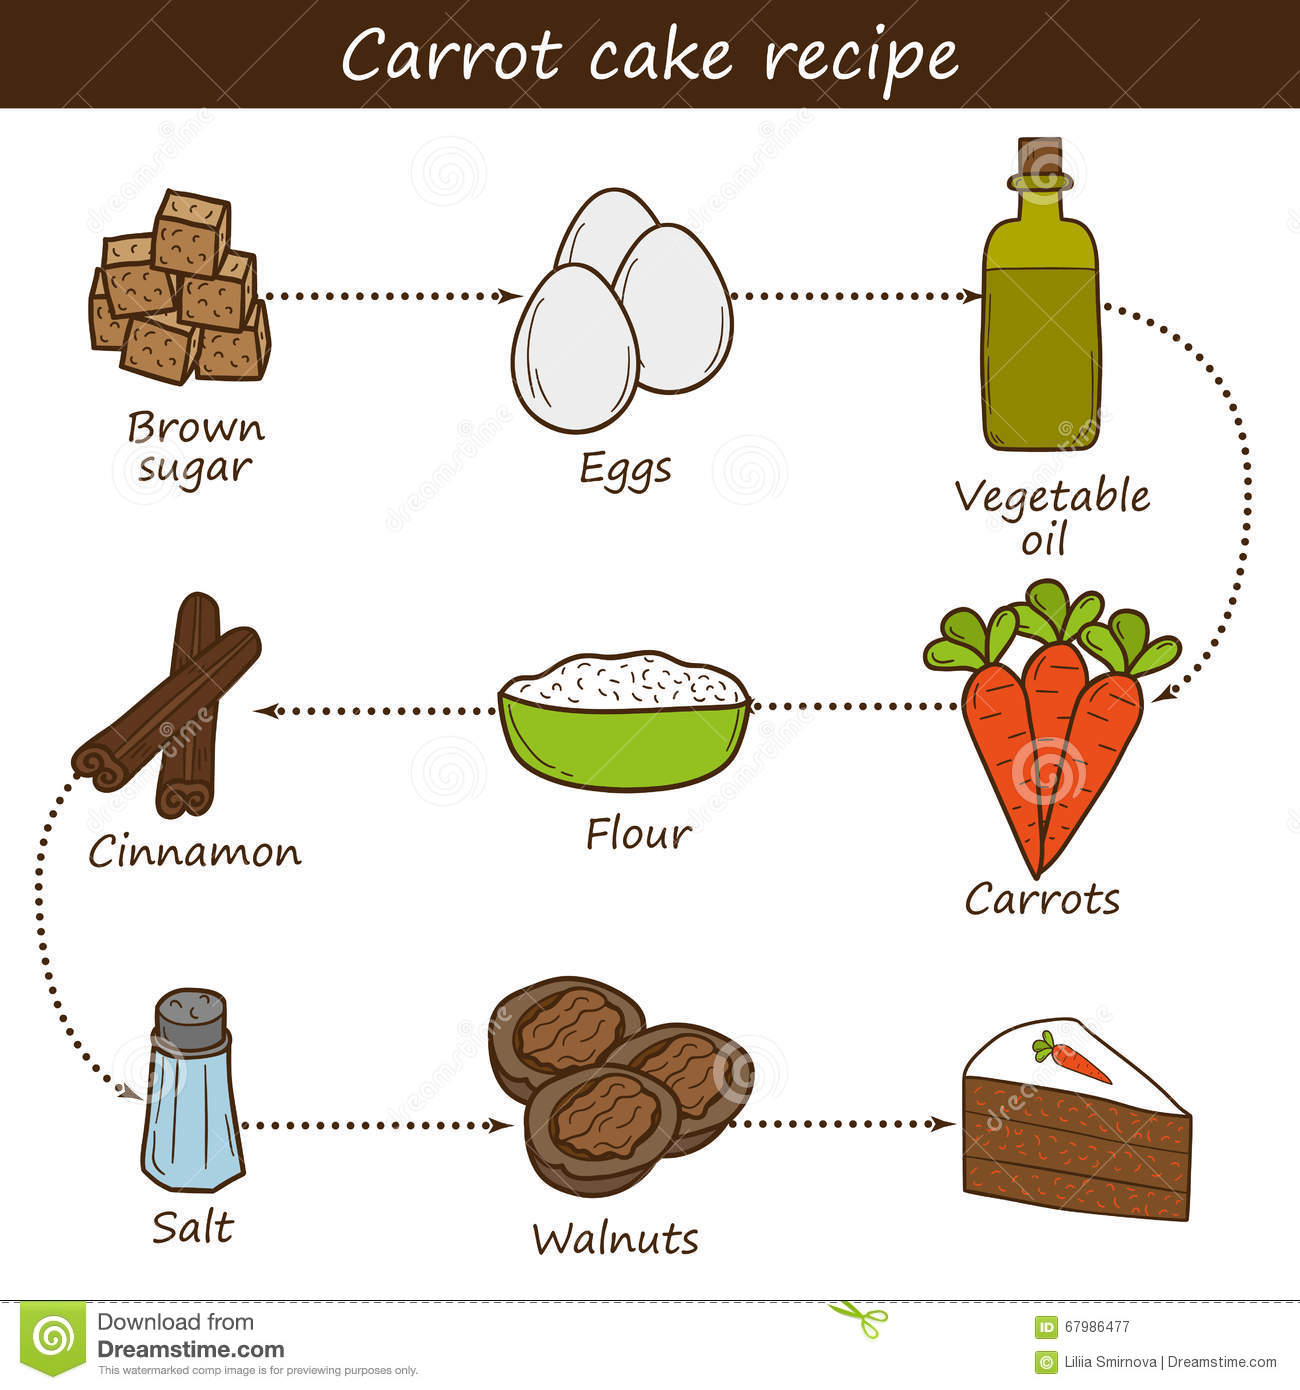 Carrot Cake Recipe With Calories